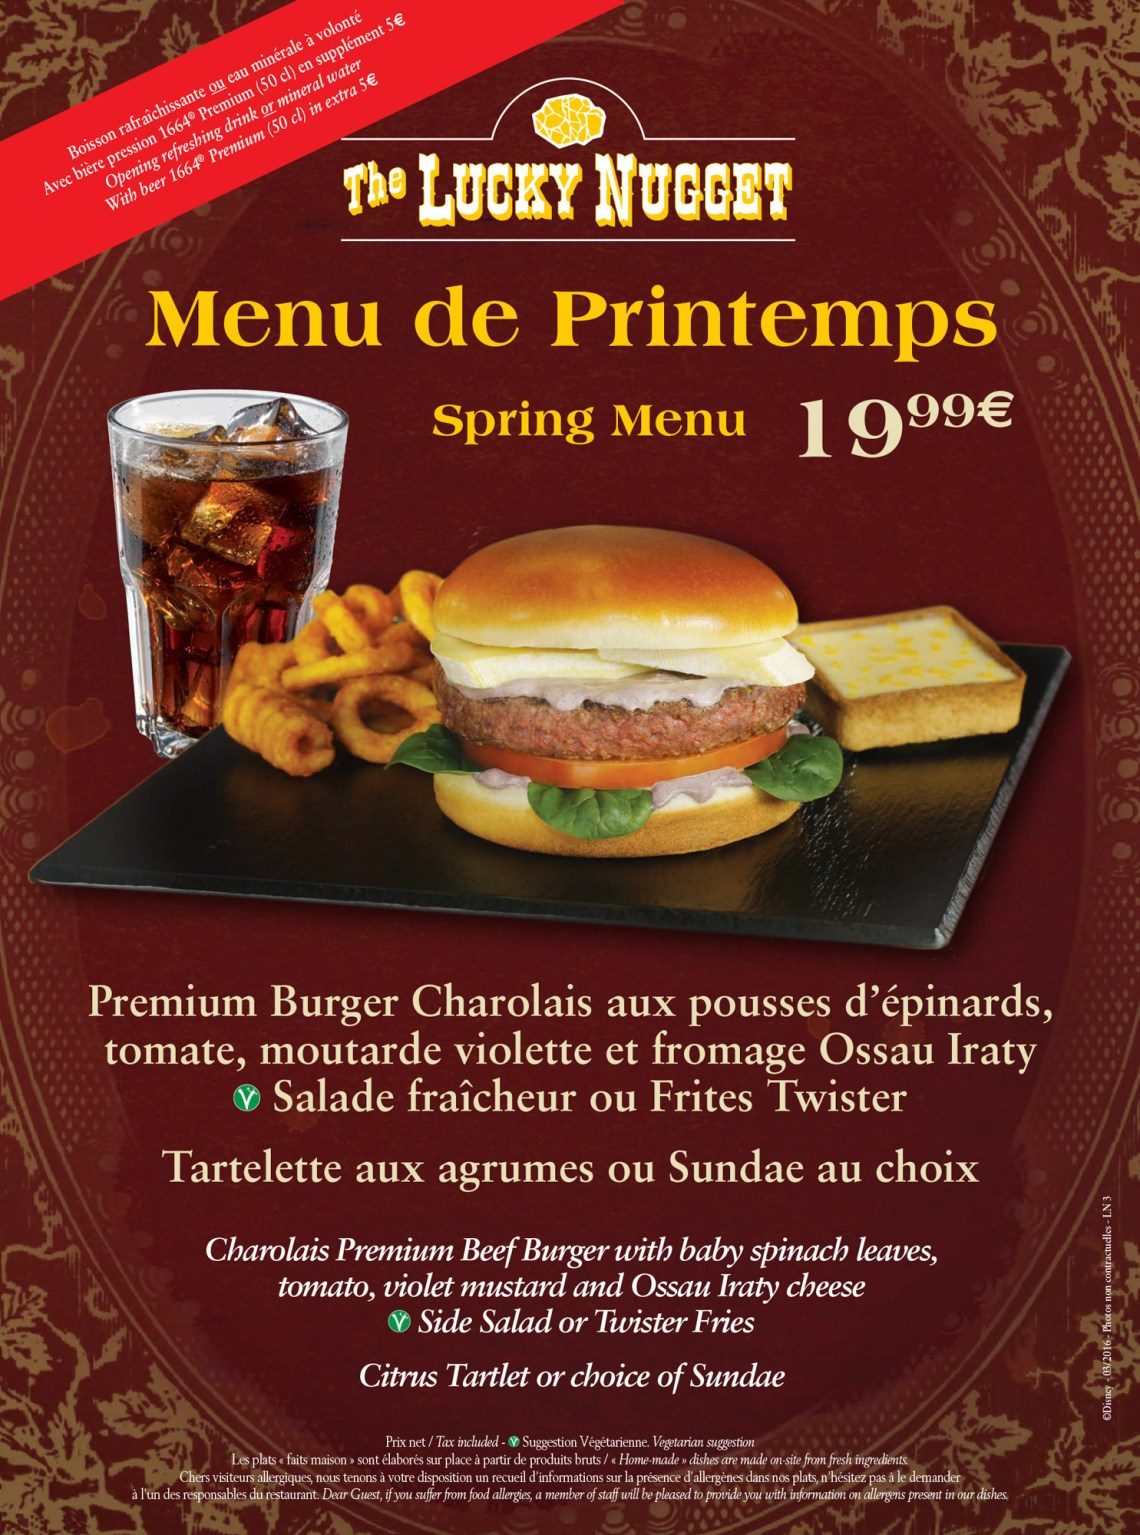 Lucky Nuggets - Menus Printemps 2016- Disneyland Paris-8